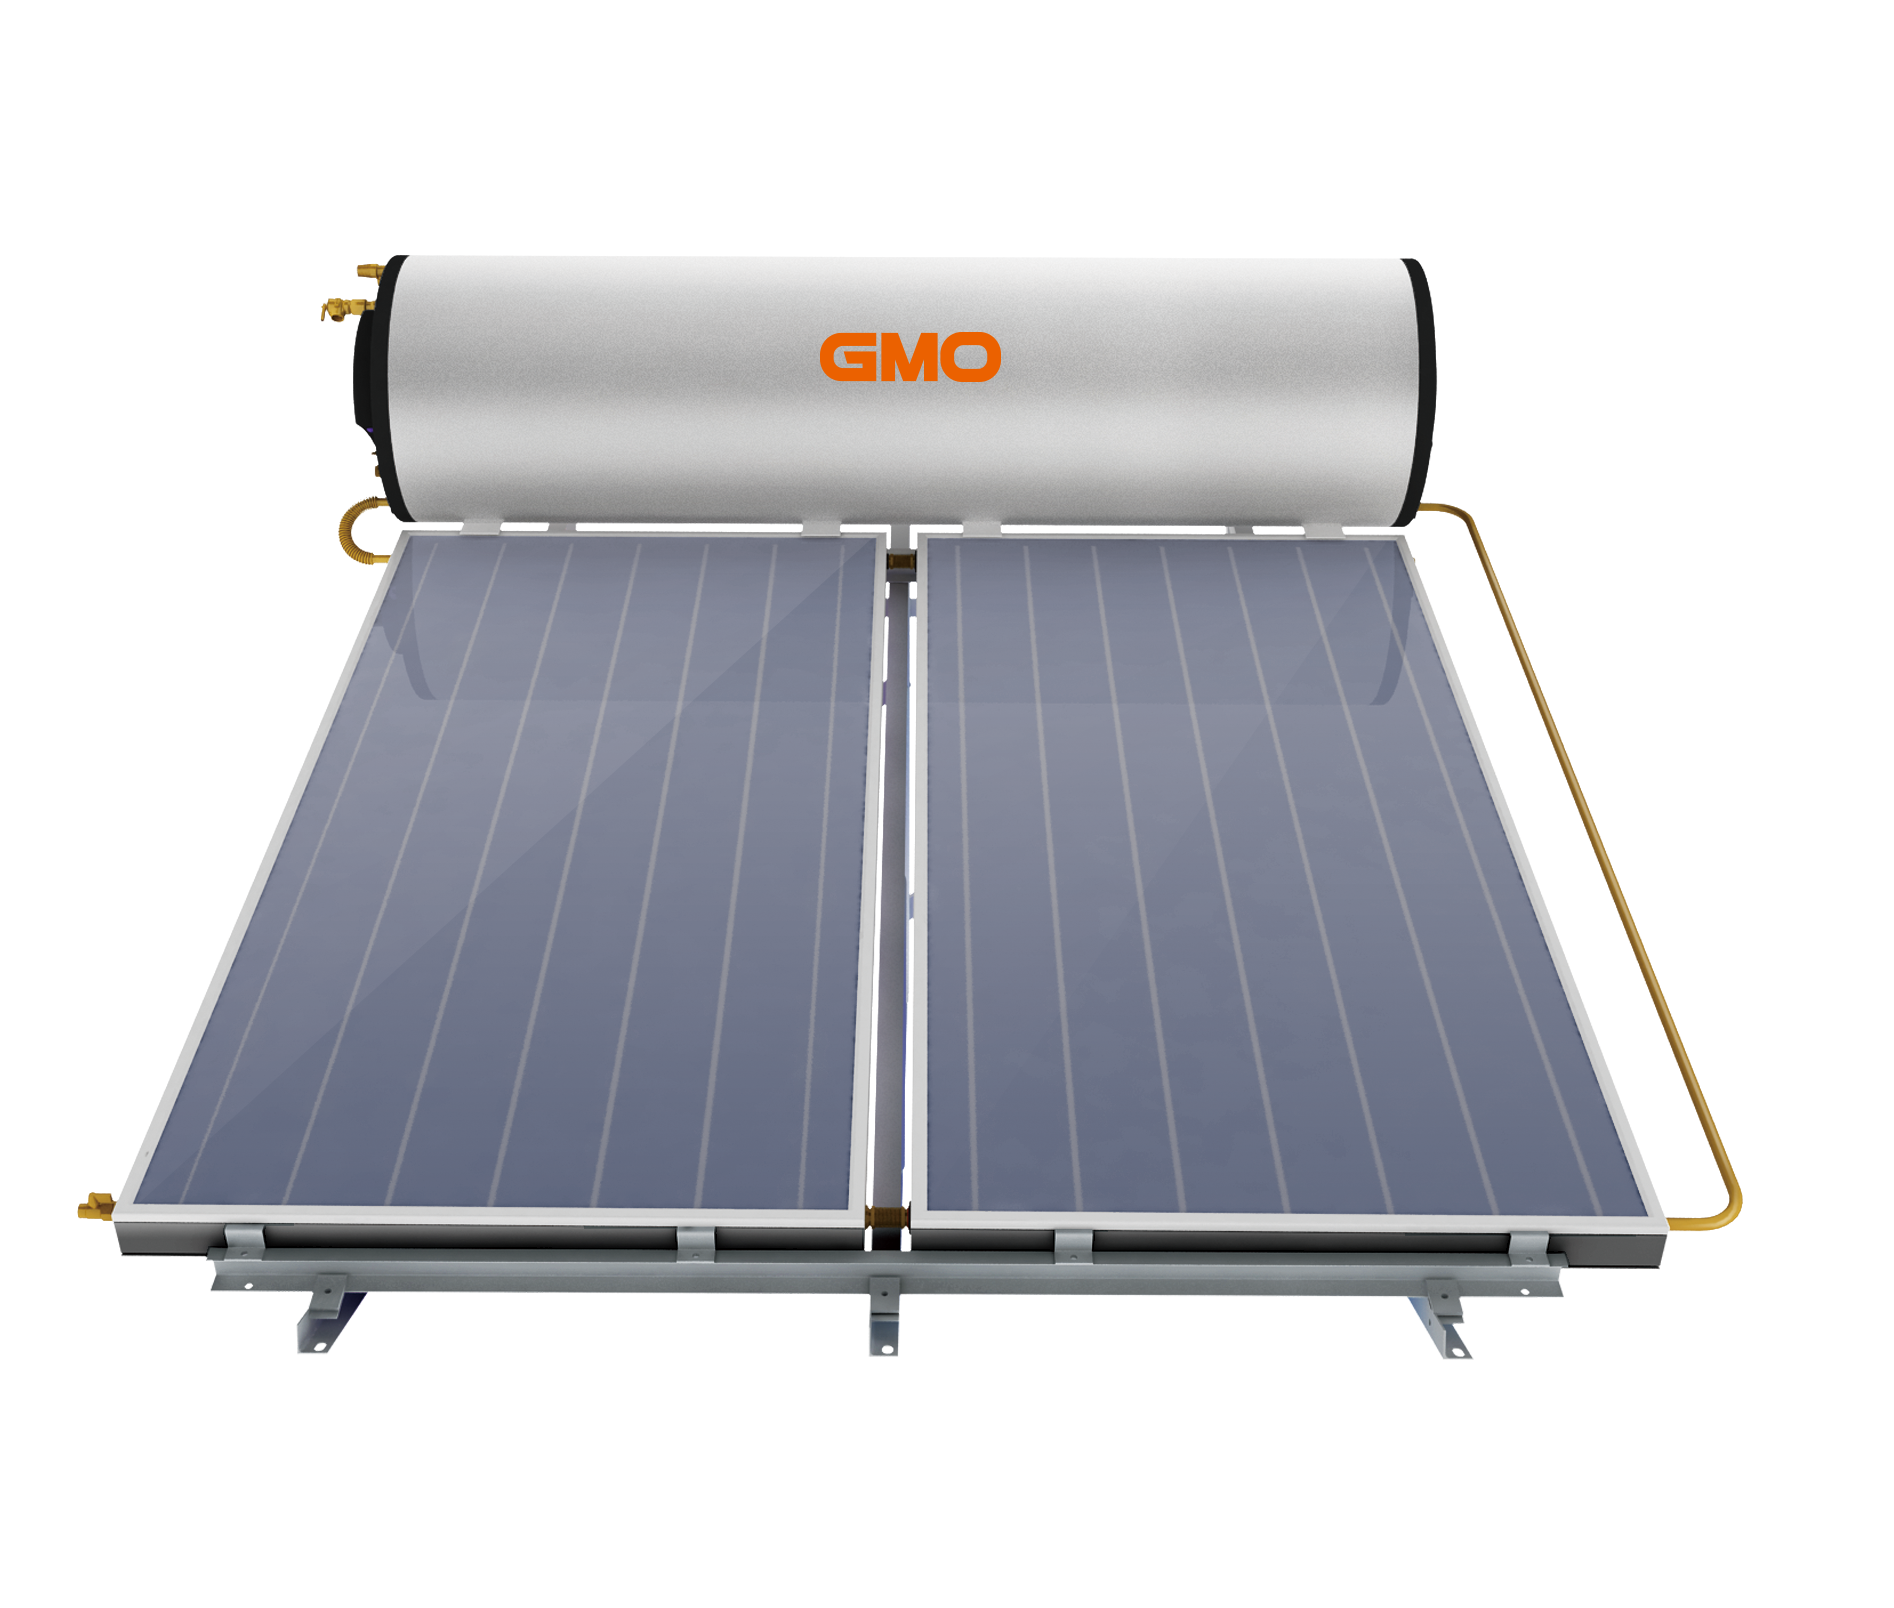 Antifreeze In Home Heating System Best House Interior Today Vacuumevacuatedtubediagram Gmo Water Heater Top Solar From